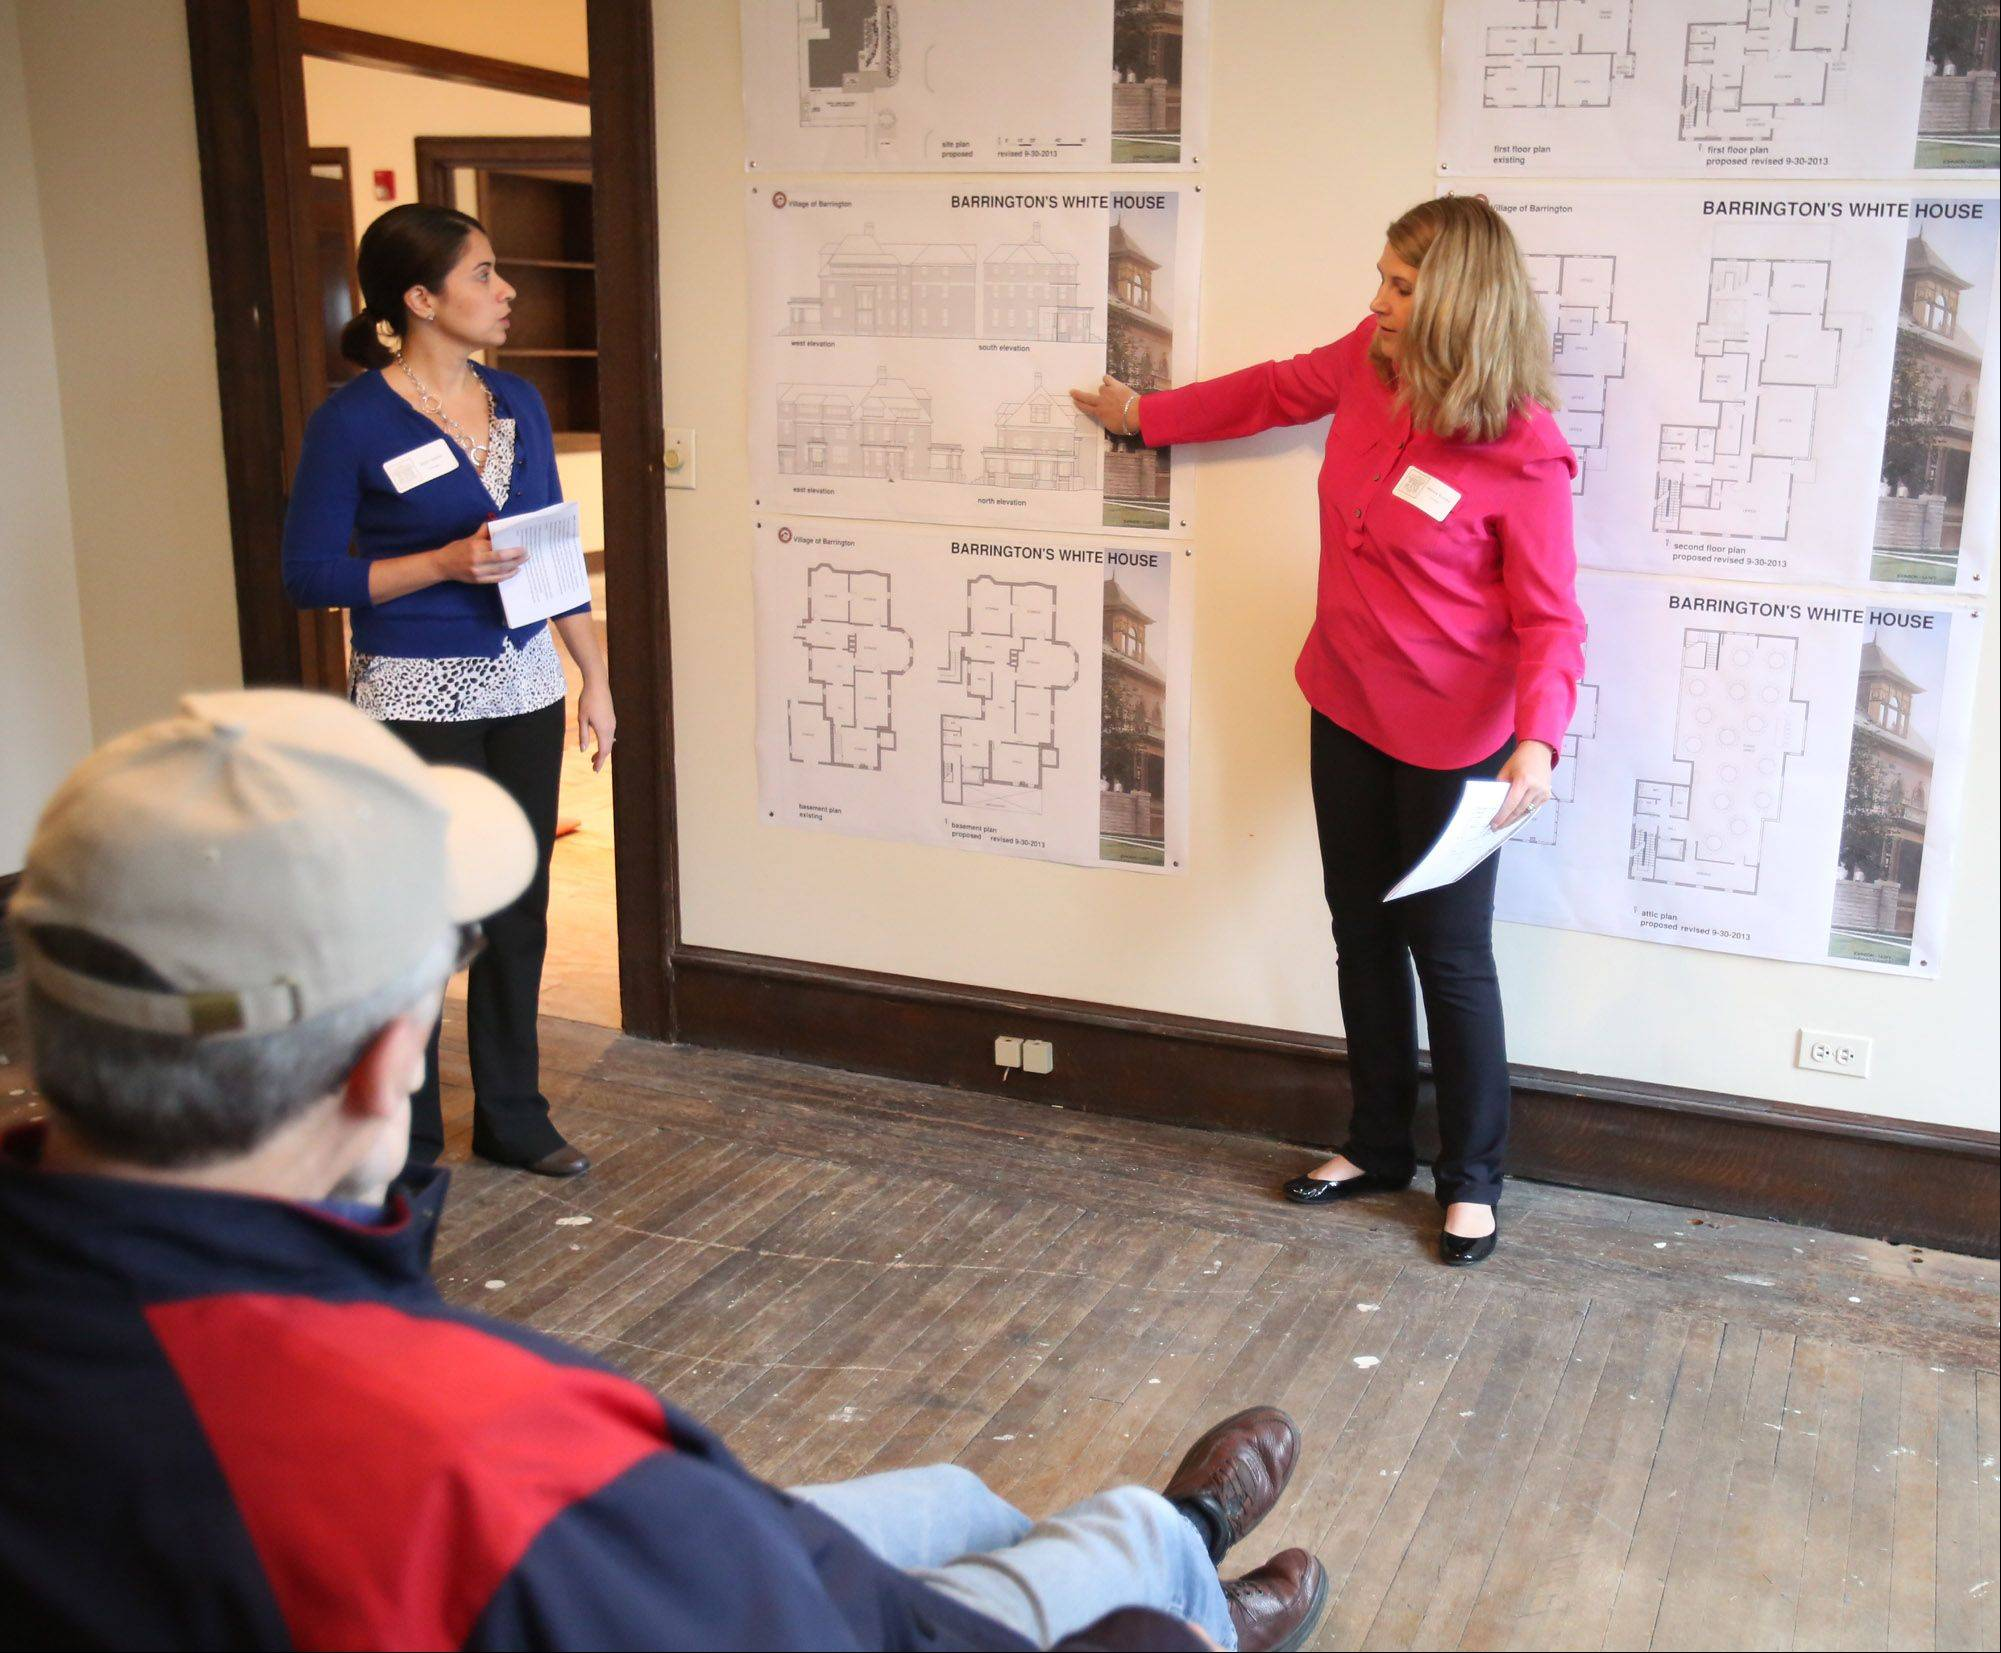 Volunteers April Goshe, left, and Melissa Buckley, both of Barrington, explain renovation plans for the White House during a community open house Saturday. The open house runs through Sunday.